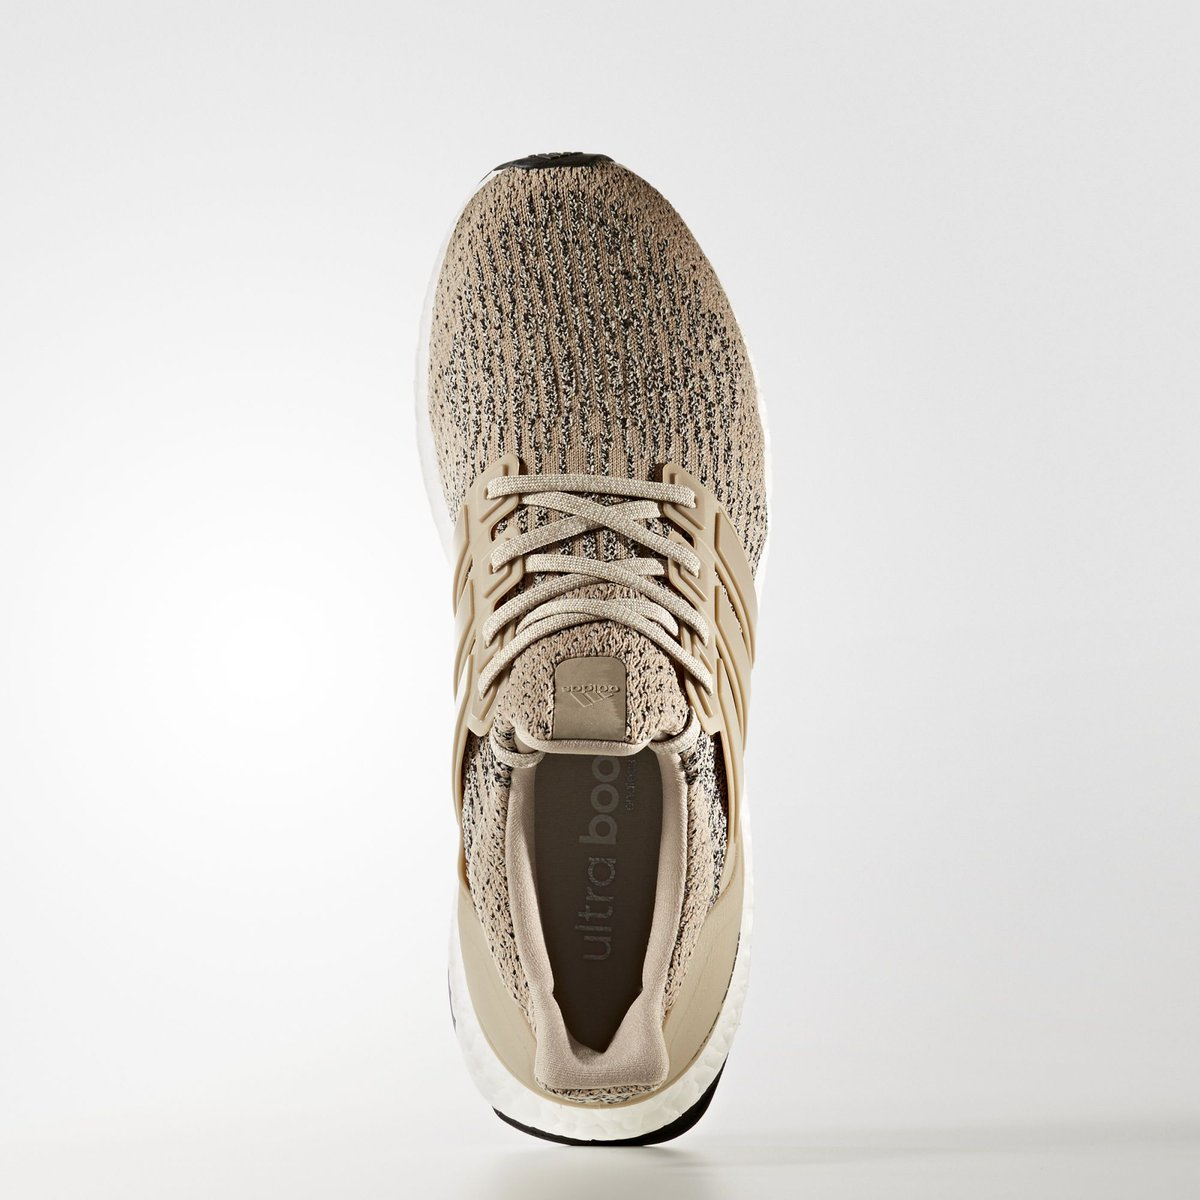 Official adidas images of the upcoming Trace Khaki Ultra Boost 3.0 d24fd7ab6